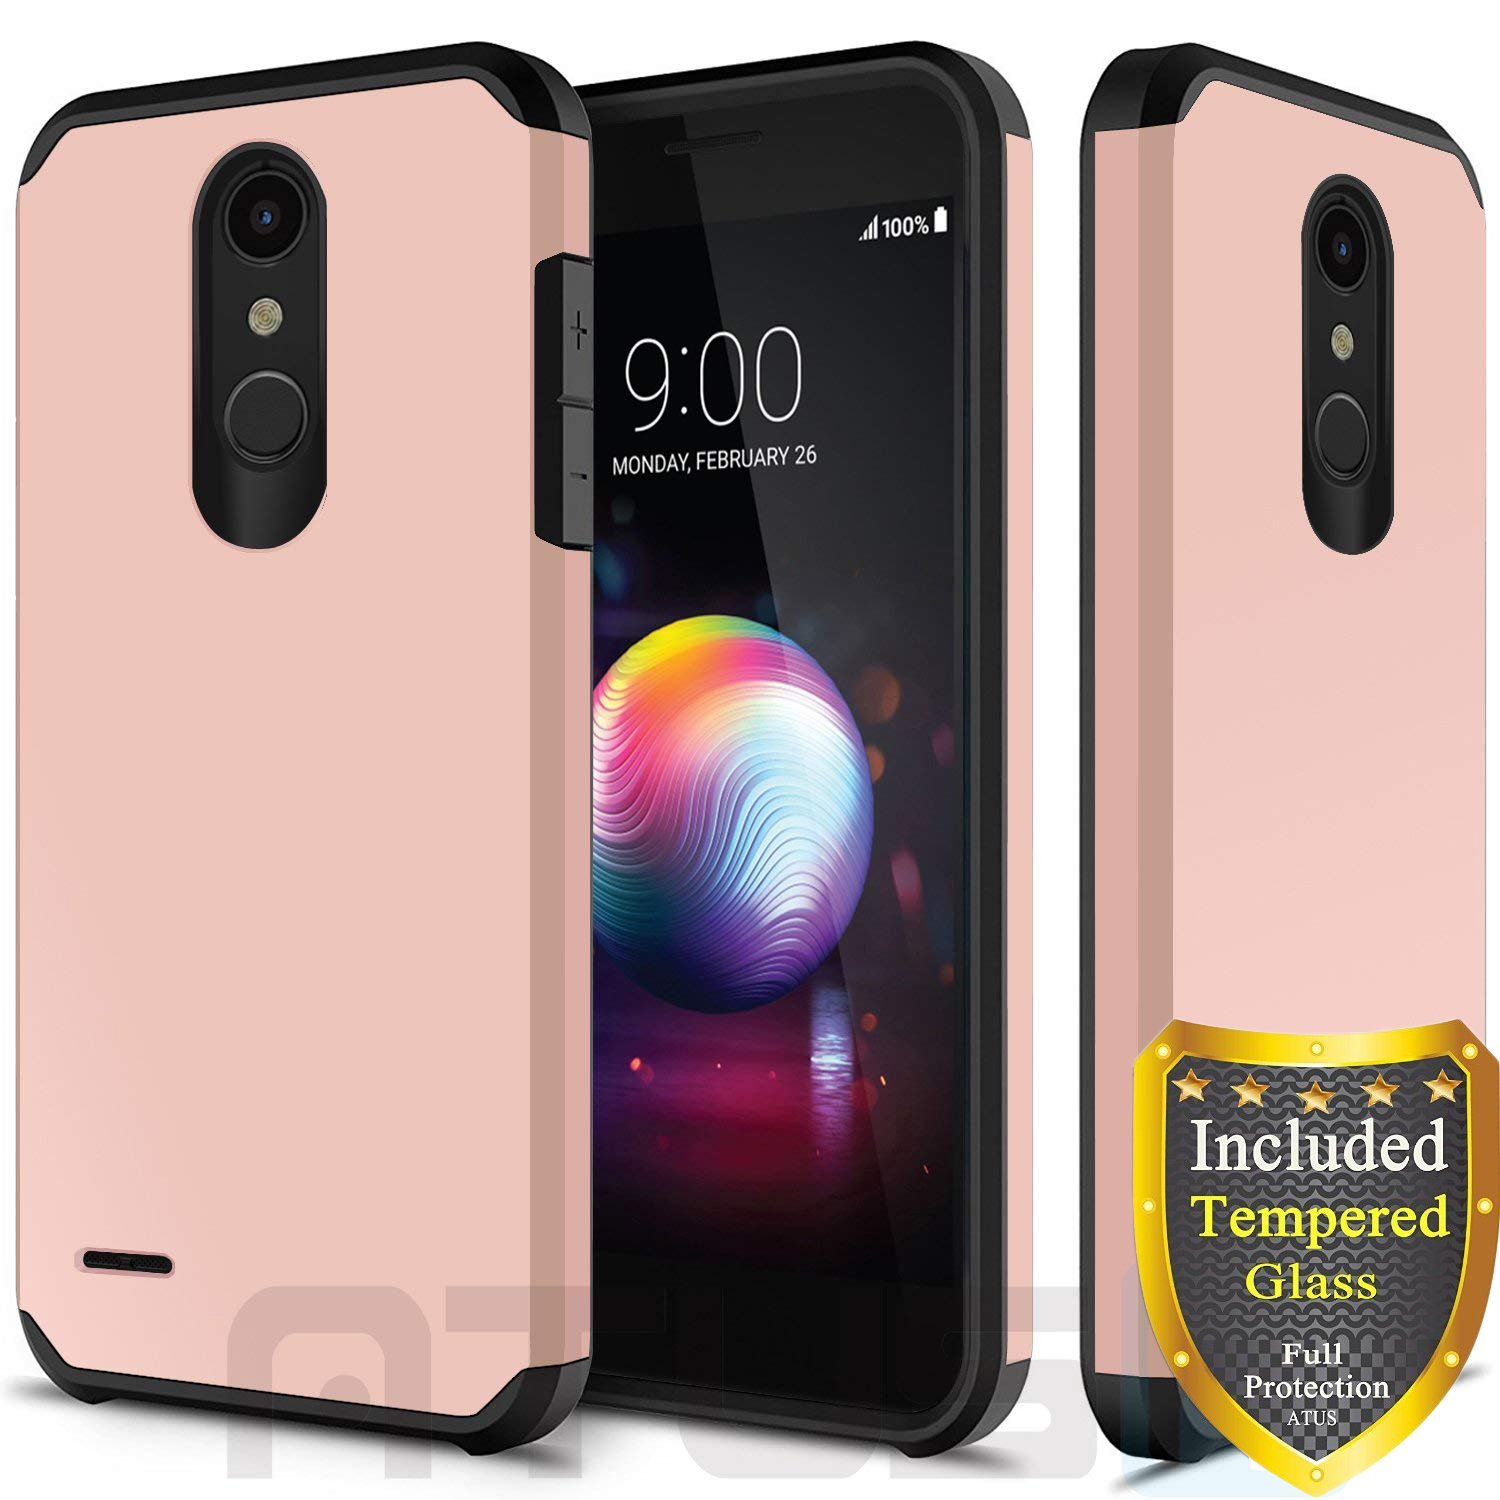 LG K30, LG Harmony 2, LG Phoenix Plus, LG Premier Pro, LG Xpression Plus, LG K10 2018 Case, with Full Cover Tempered Glass Screen Protector, ATUS Hybrid Dual Layer Protective TPU Case (Rosegold)